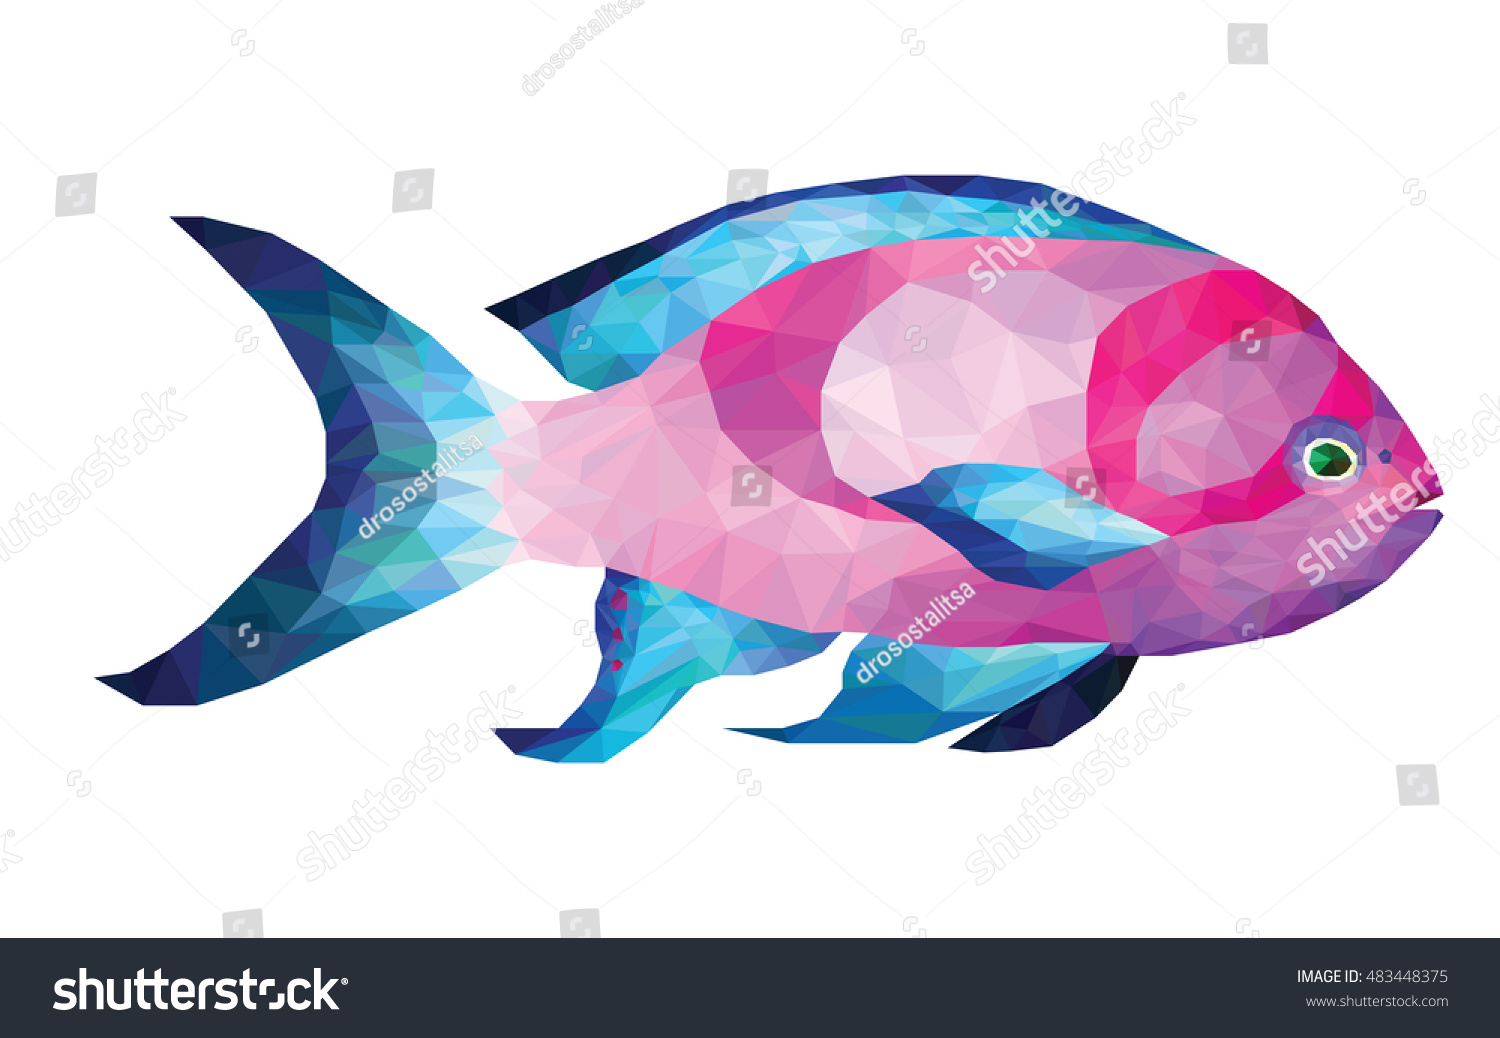 Low poly design tropical fish beautiful stock vector 483448375 low poly design of tropical fish beautiful pink and blue fish vector jeuxipadfo Images